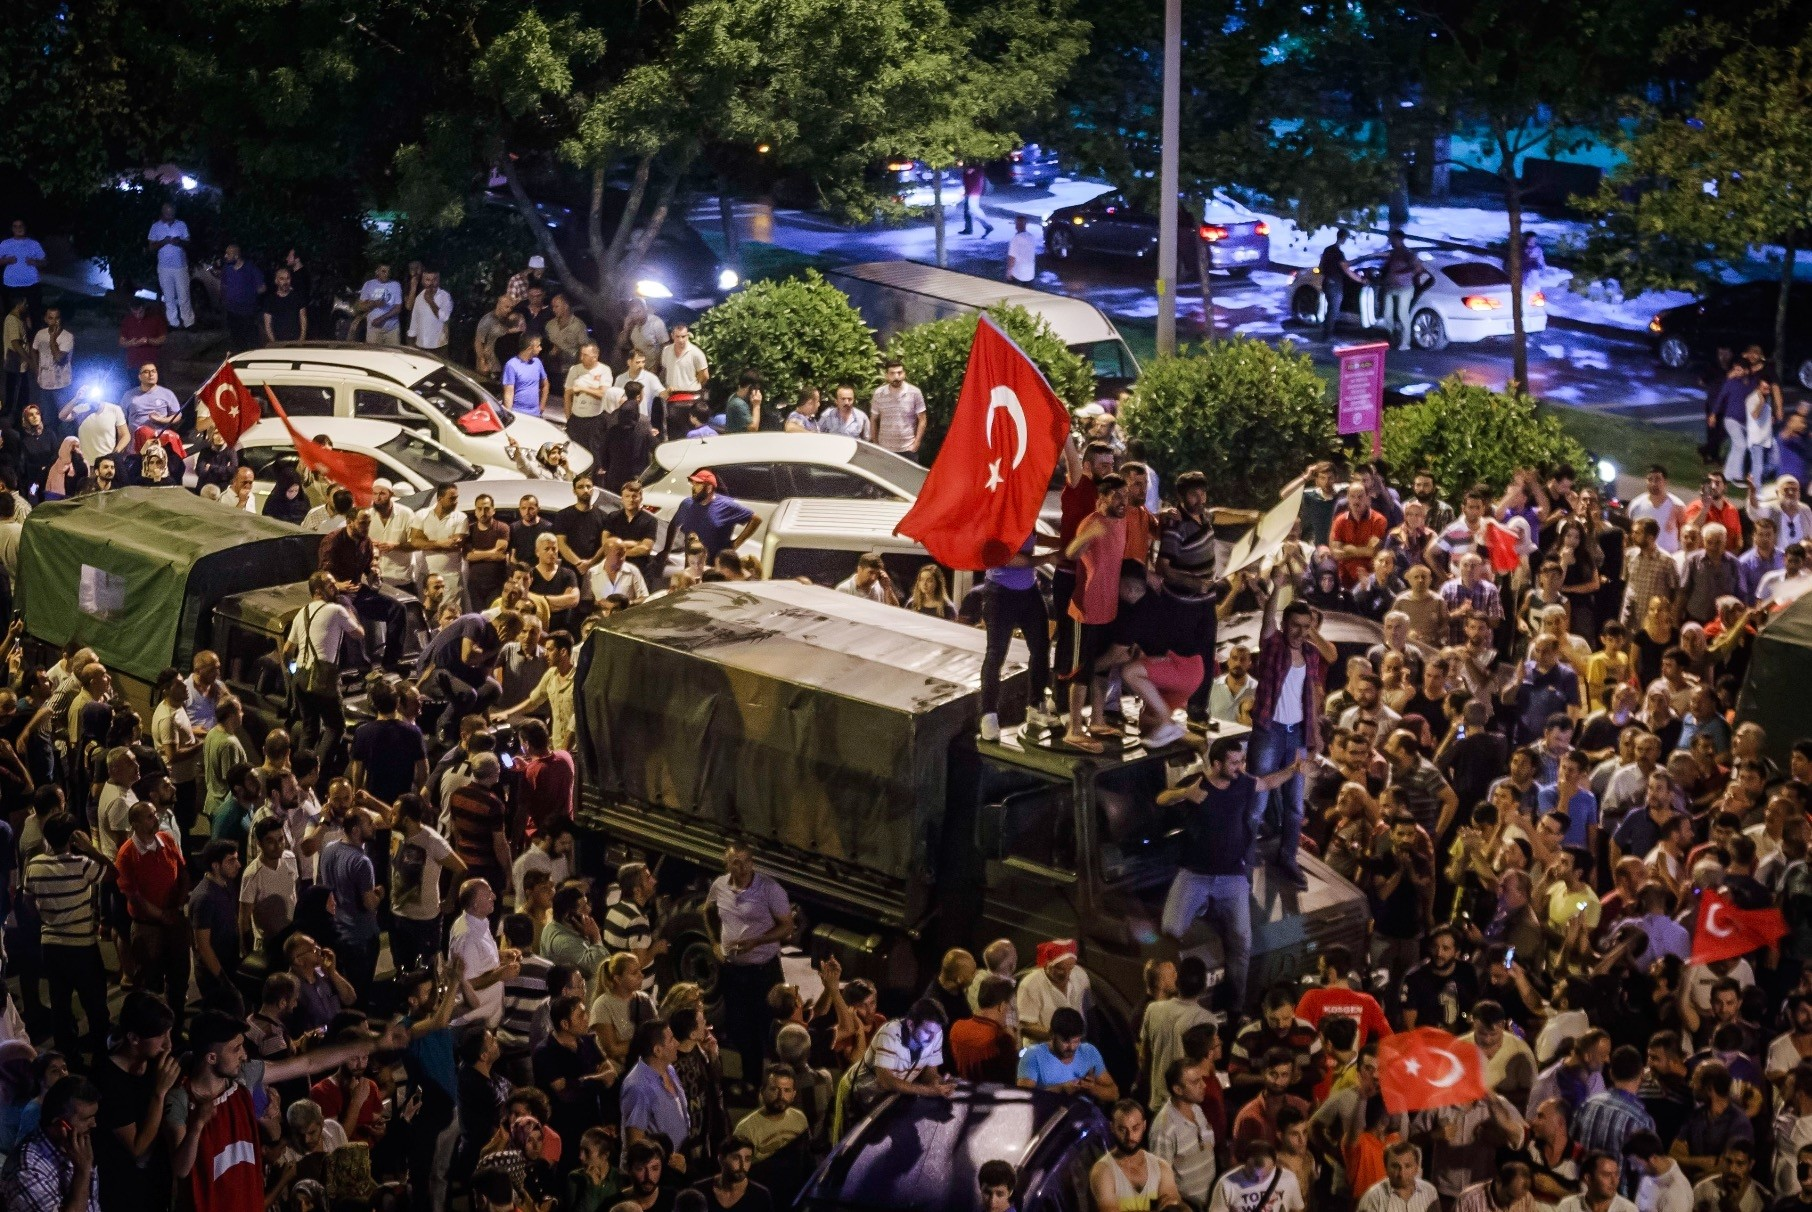 The coup plotters who wanted to take control of the headquarters of the Justice and Development Party (AK Party) in Ankara were repelled by ordinary citizens on the night of the coup attempt on July 15, 2016.